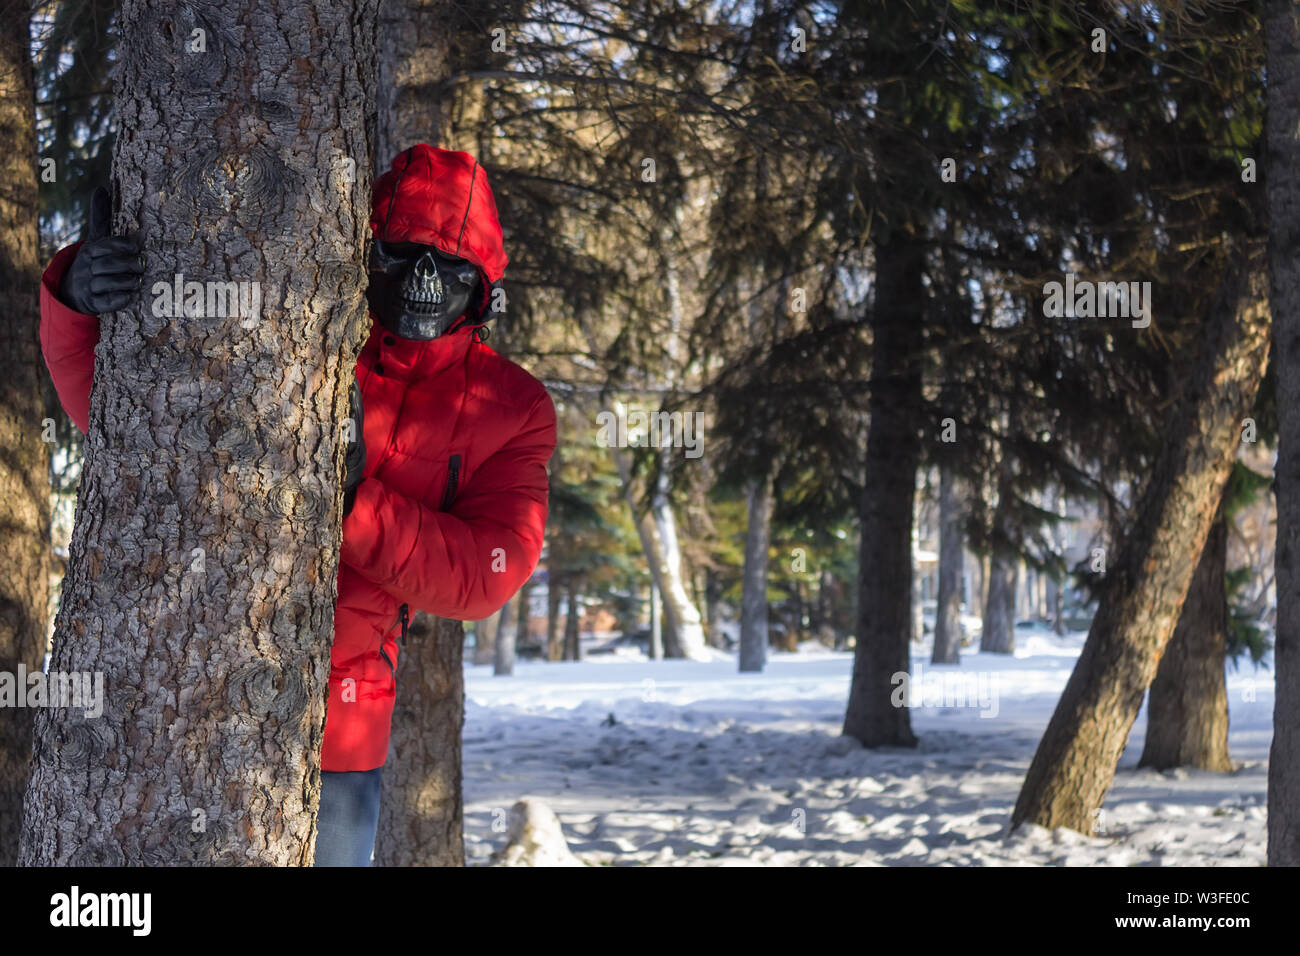 Brutal killer in a scary mask is waiting for his victim in the park - Stock Image